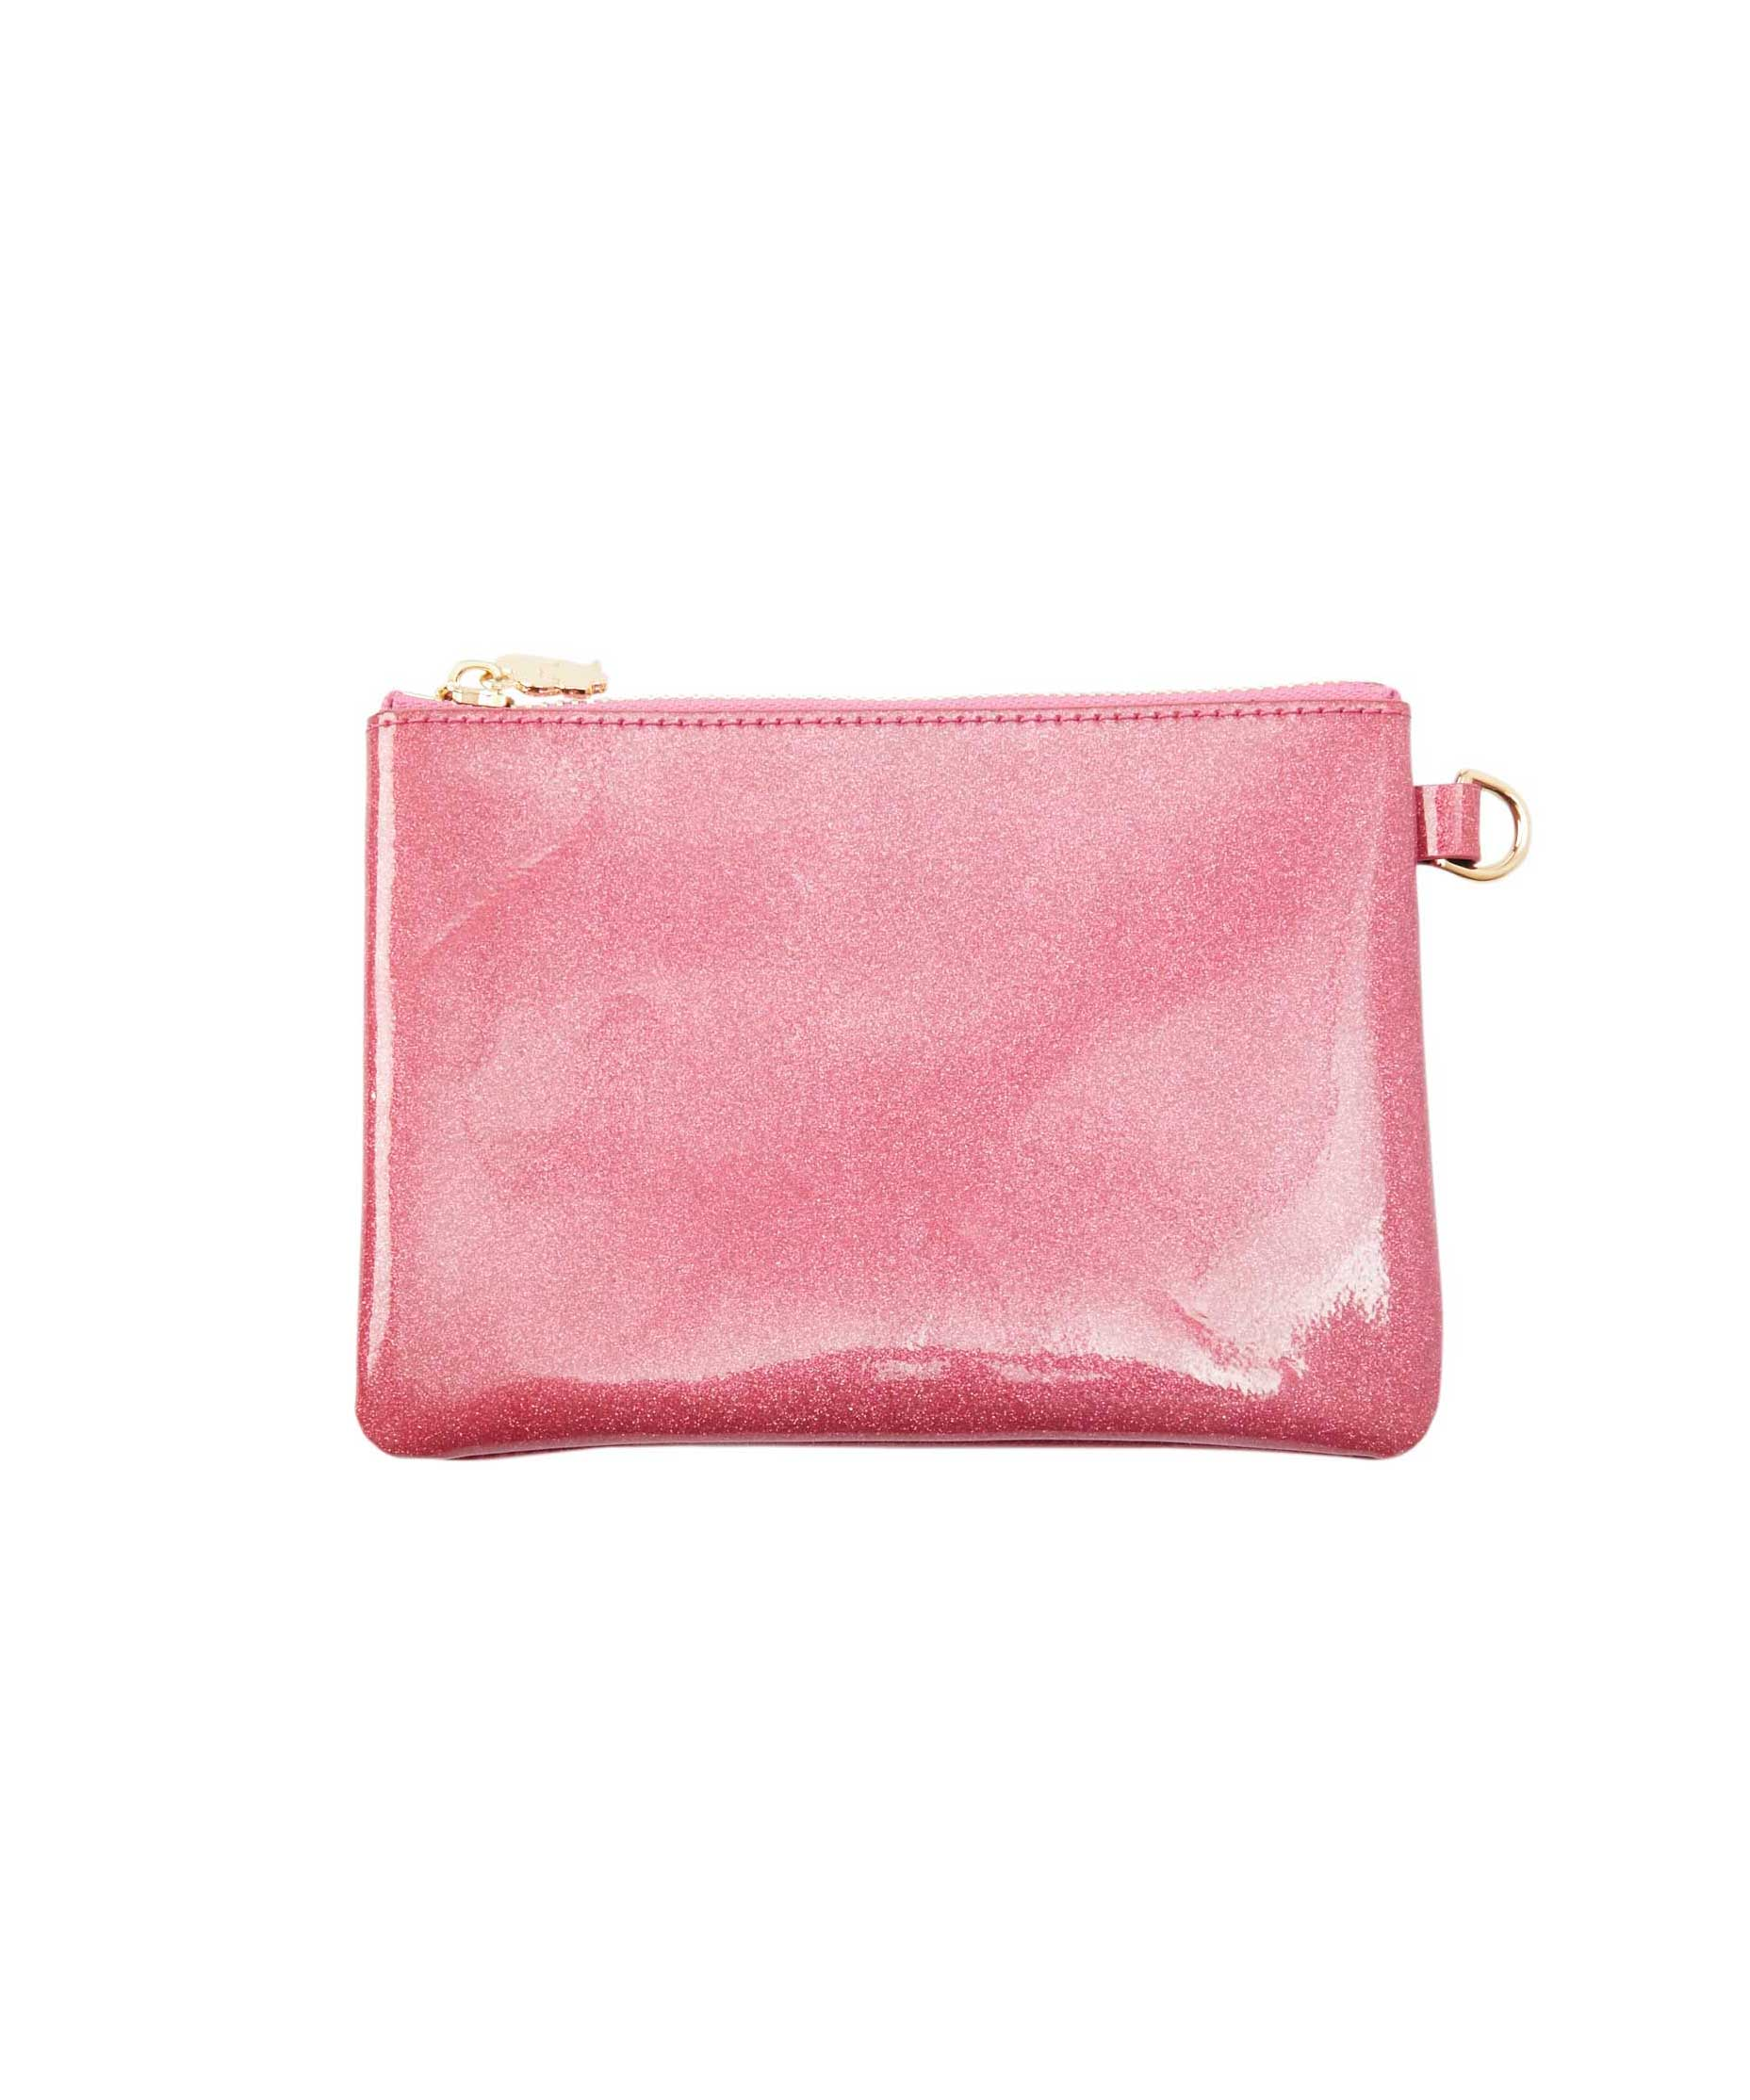 Pink Glitter Small Pouch